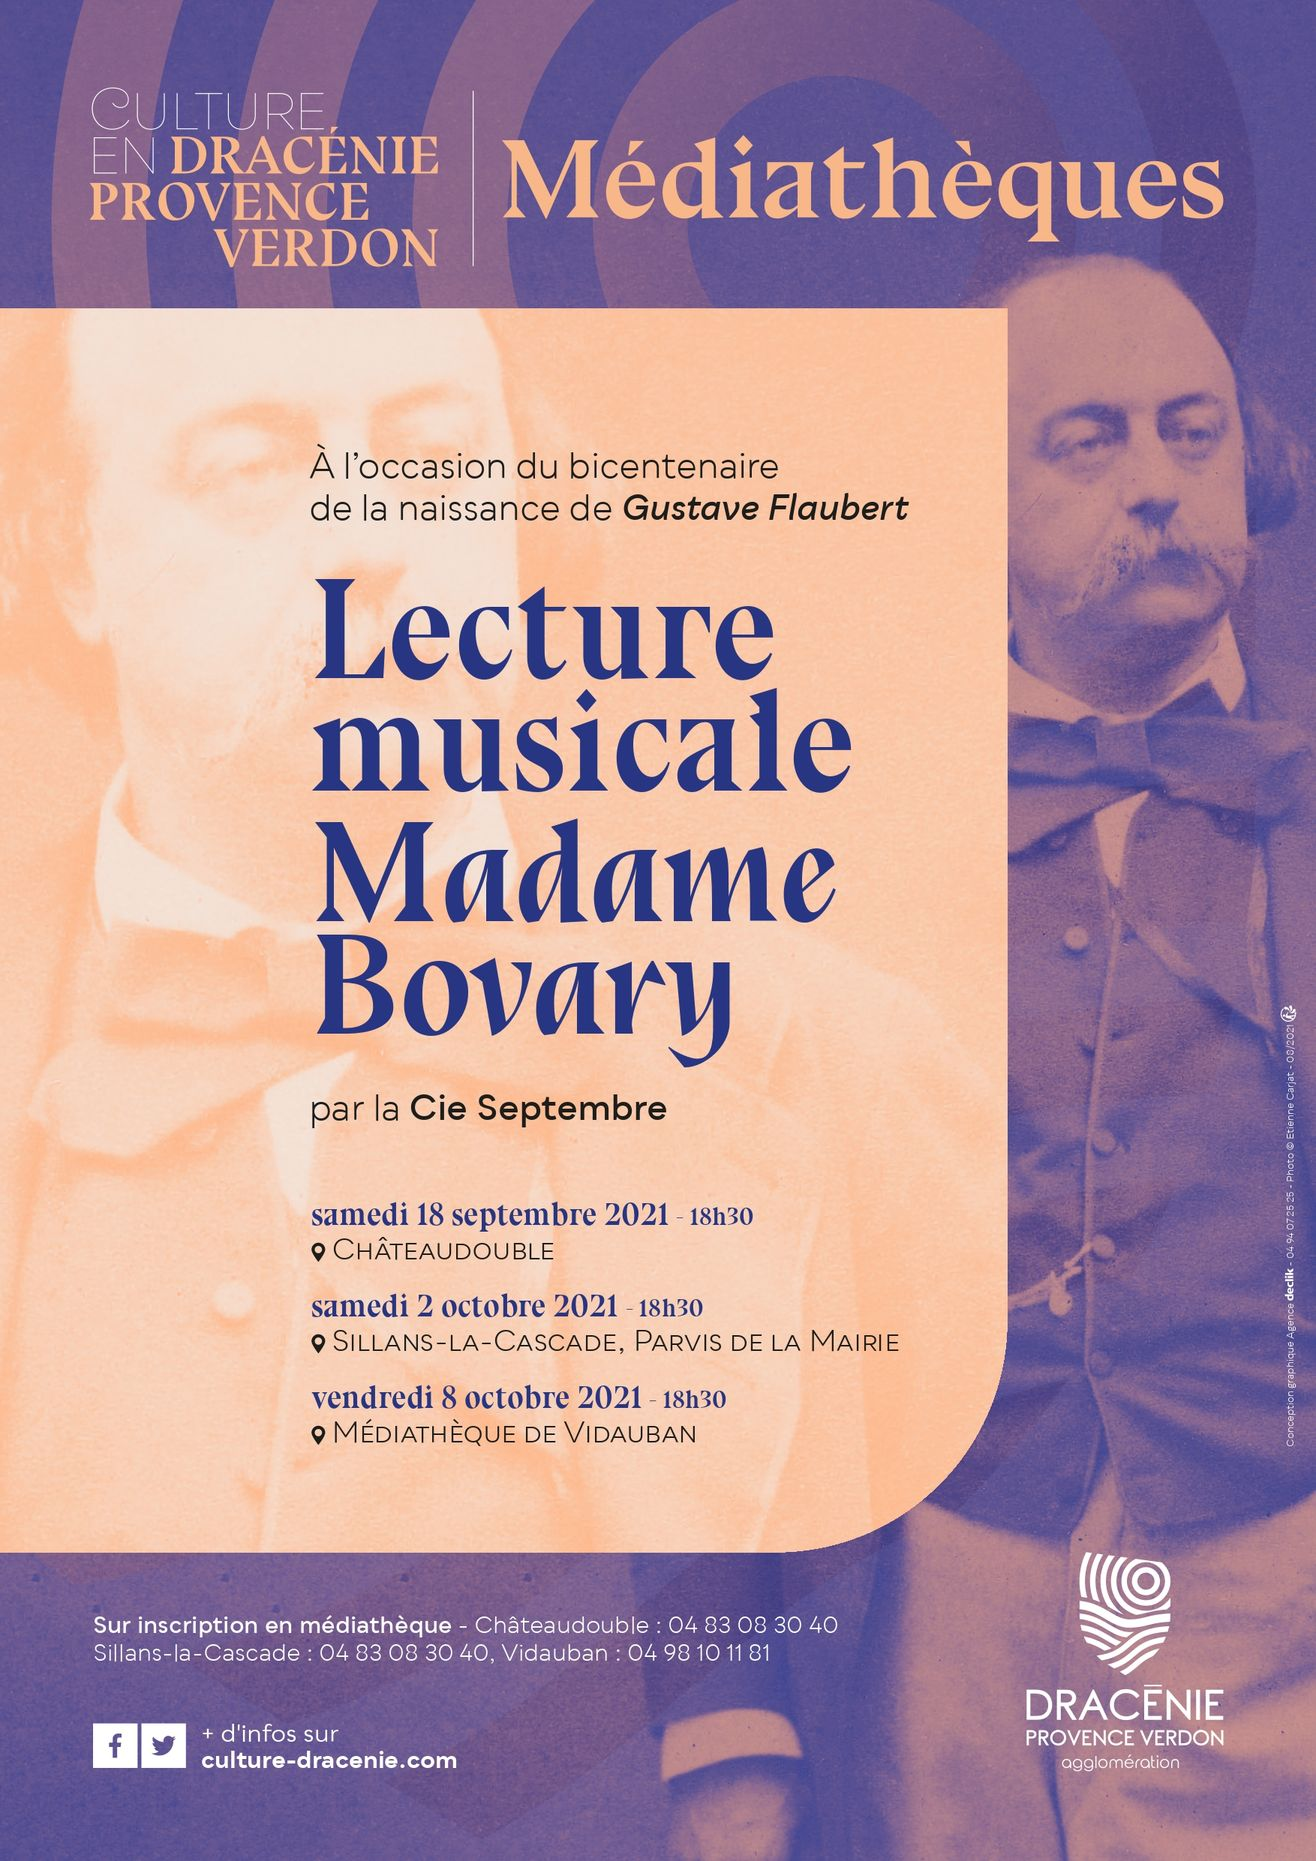 Lecture musicale Madame Bovary